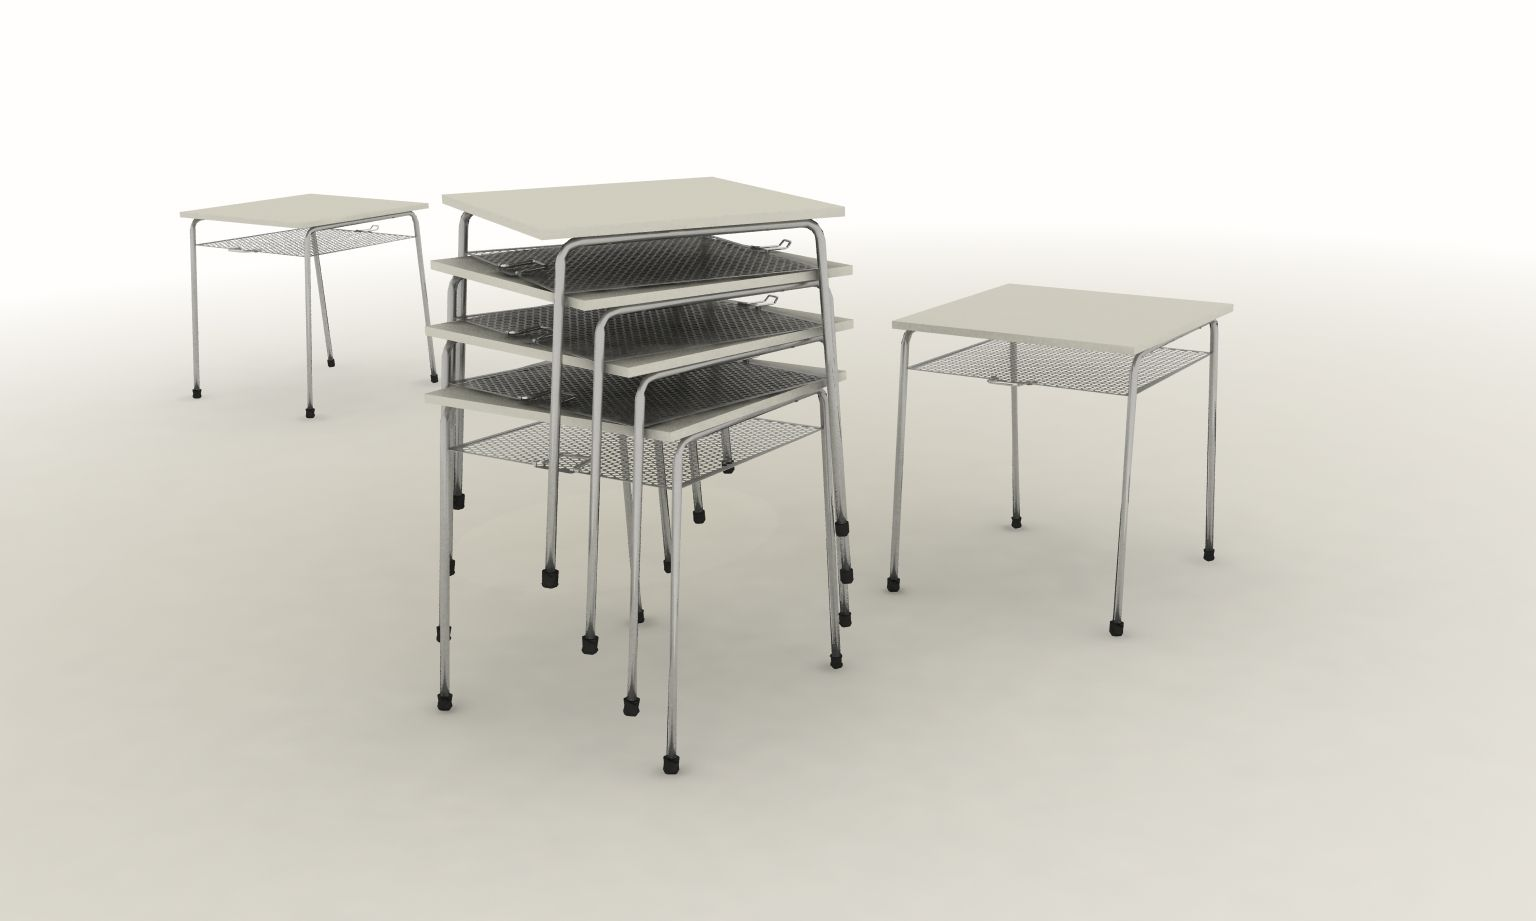 Enjambre - School Furniture Collection  Student's Desk, stackable + attachable modularity. Product design